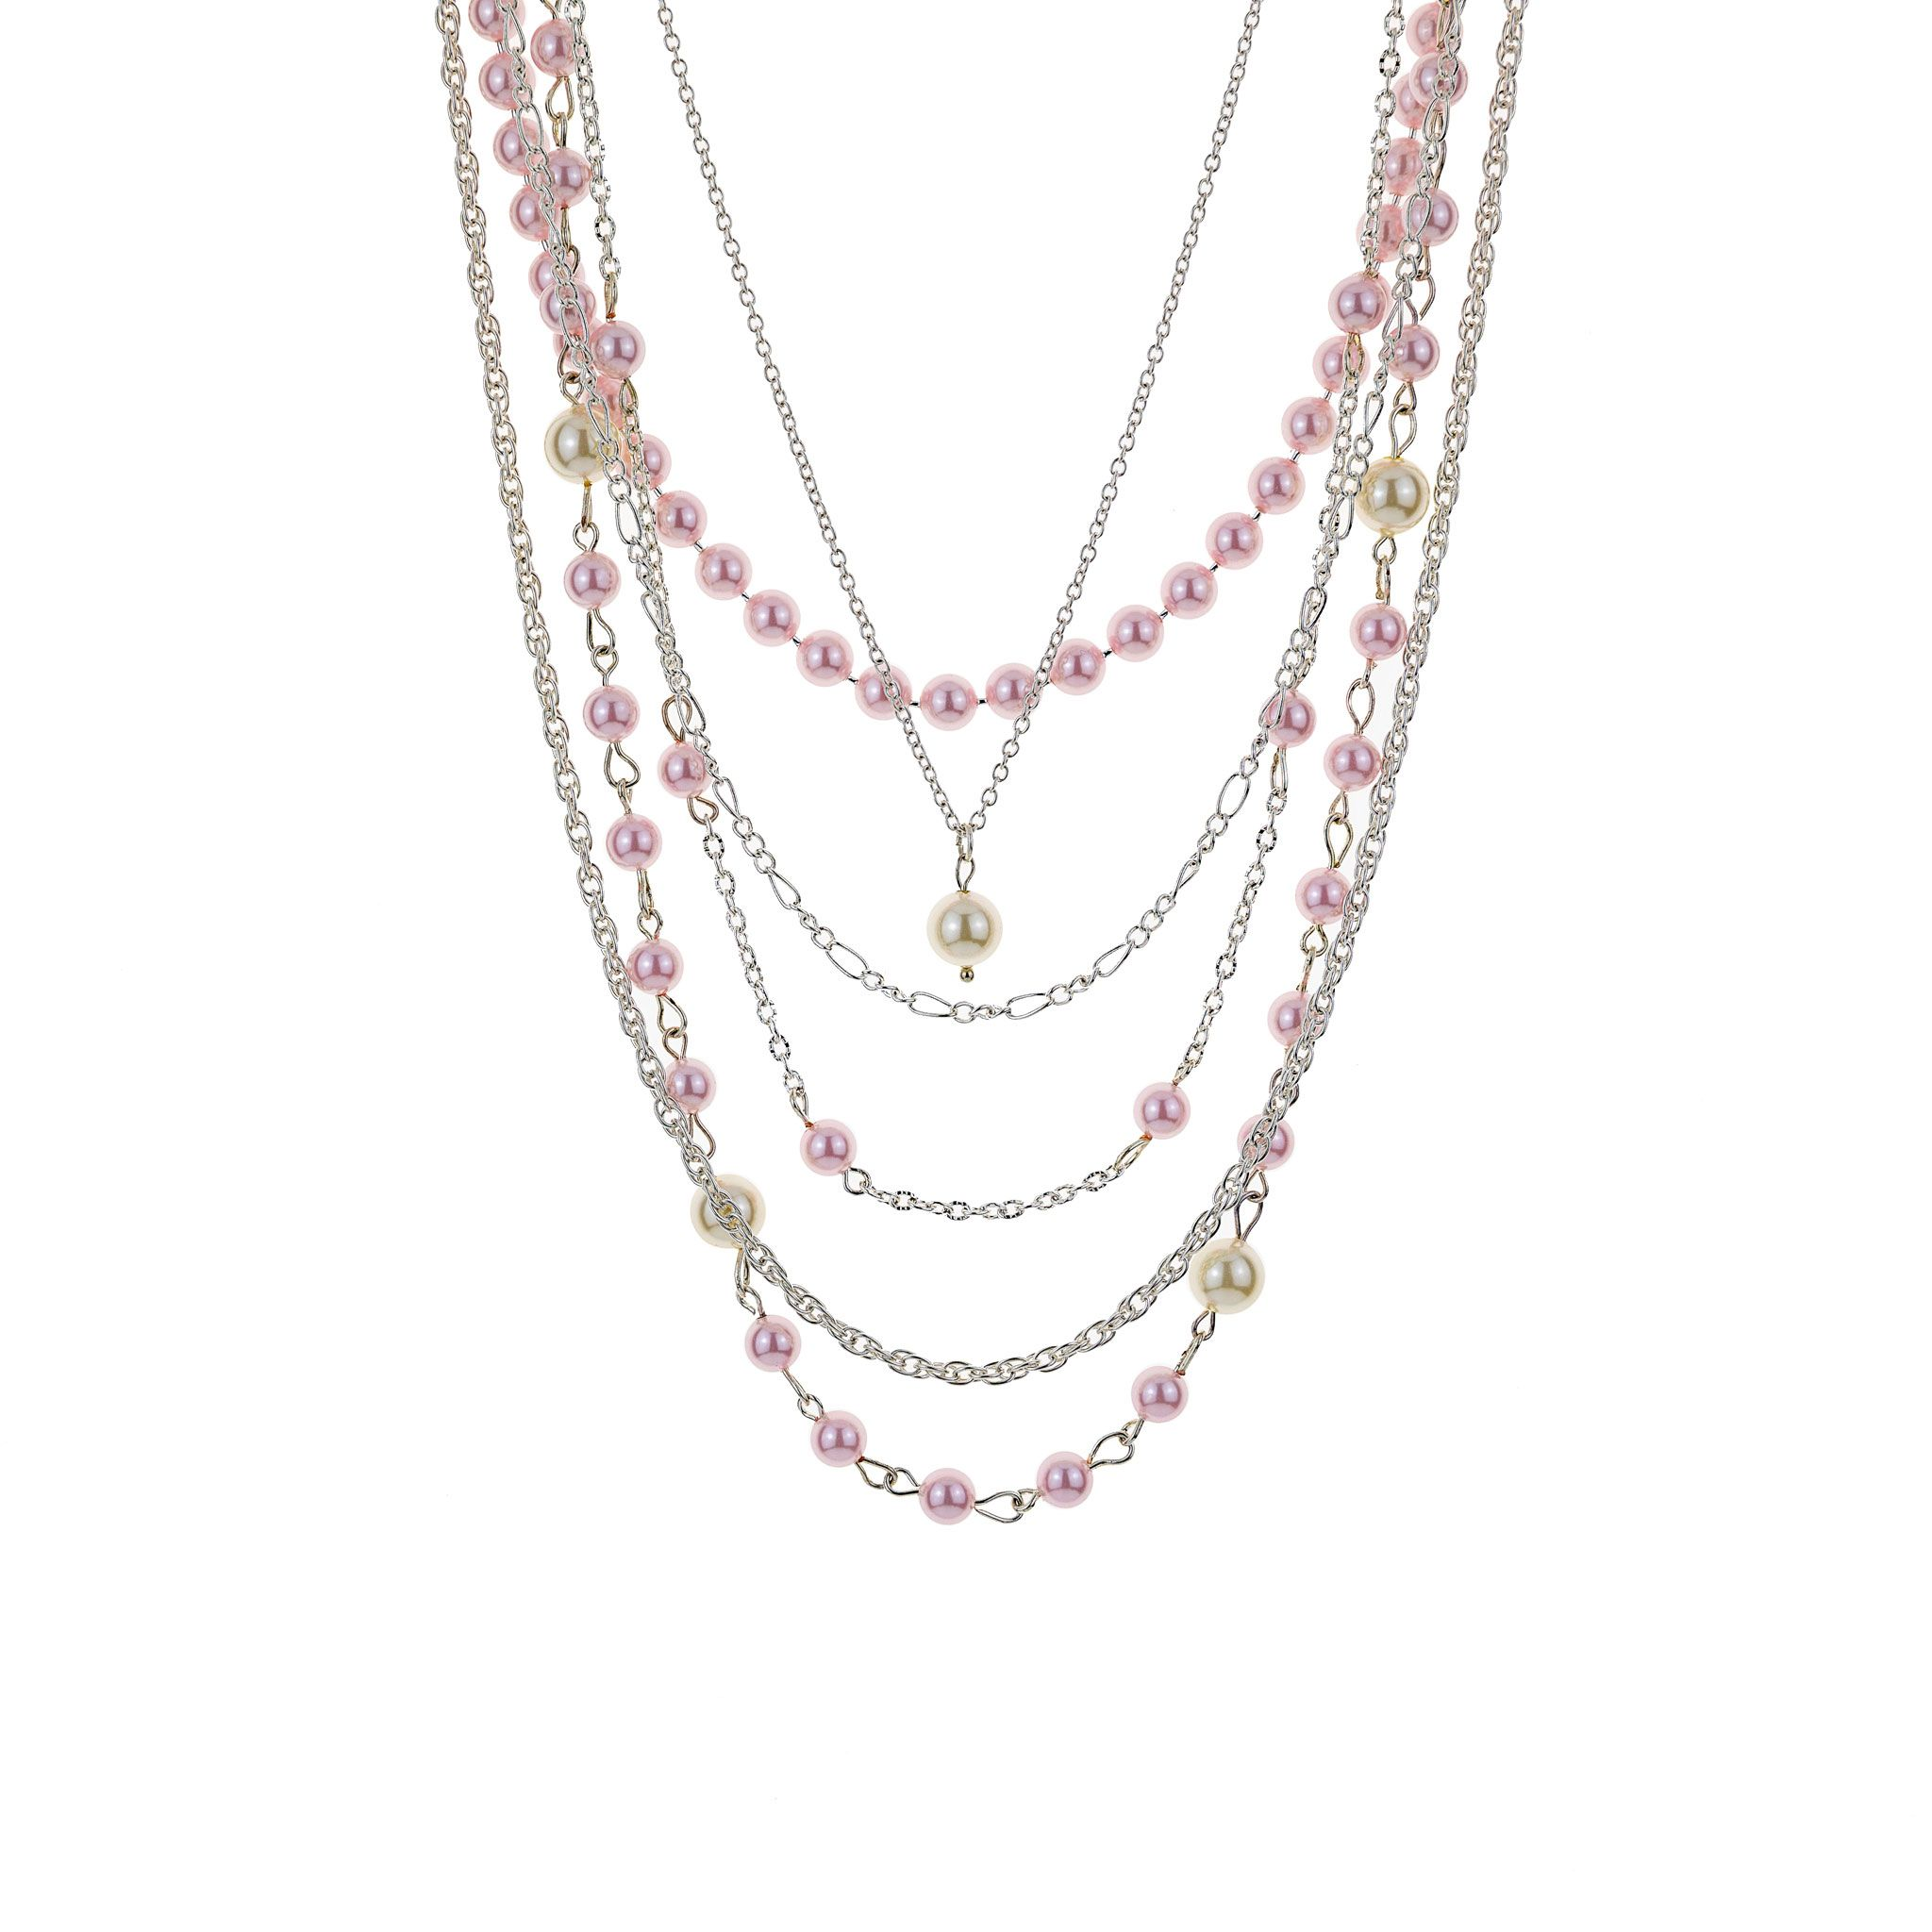 Pink-Tone Layered Necklace